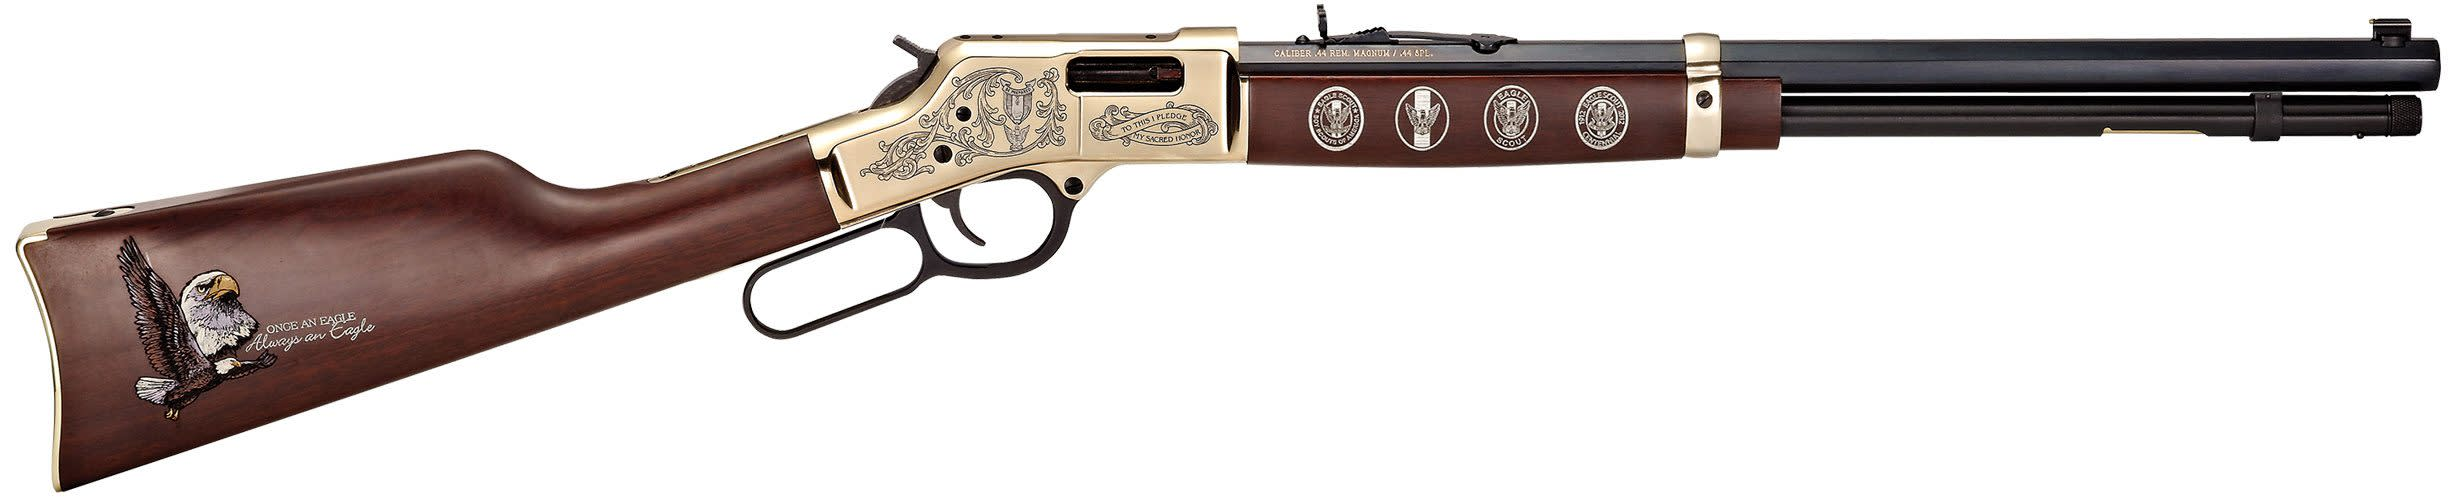 Henry Big Boy Eagle Scout Centennial Tribute Edition Lever-Action Rifle - 44 Rem Mag/44 Spl 20